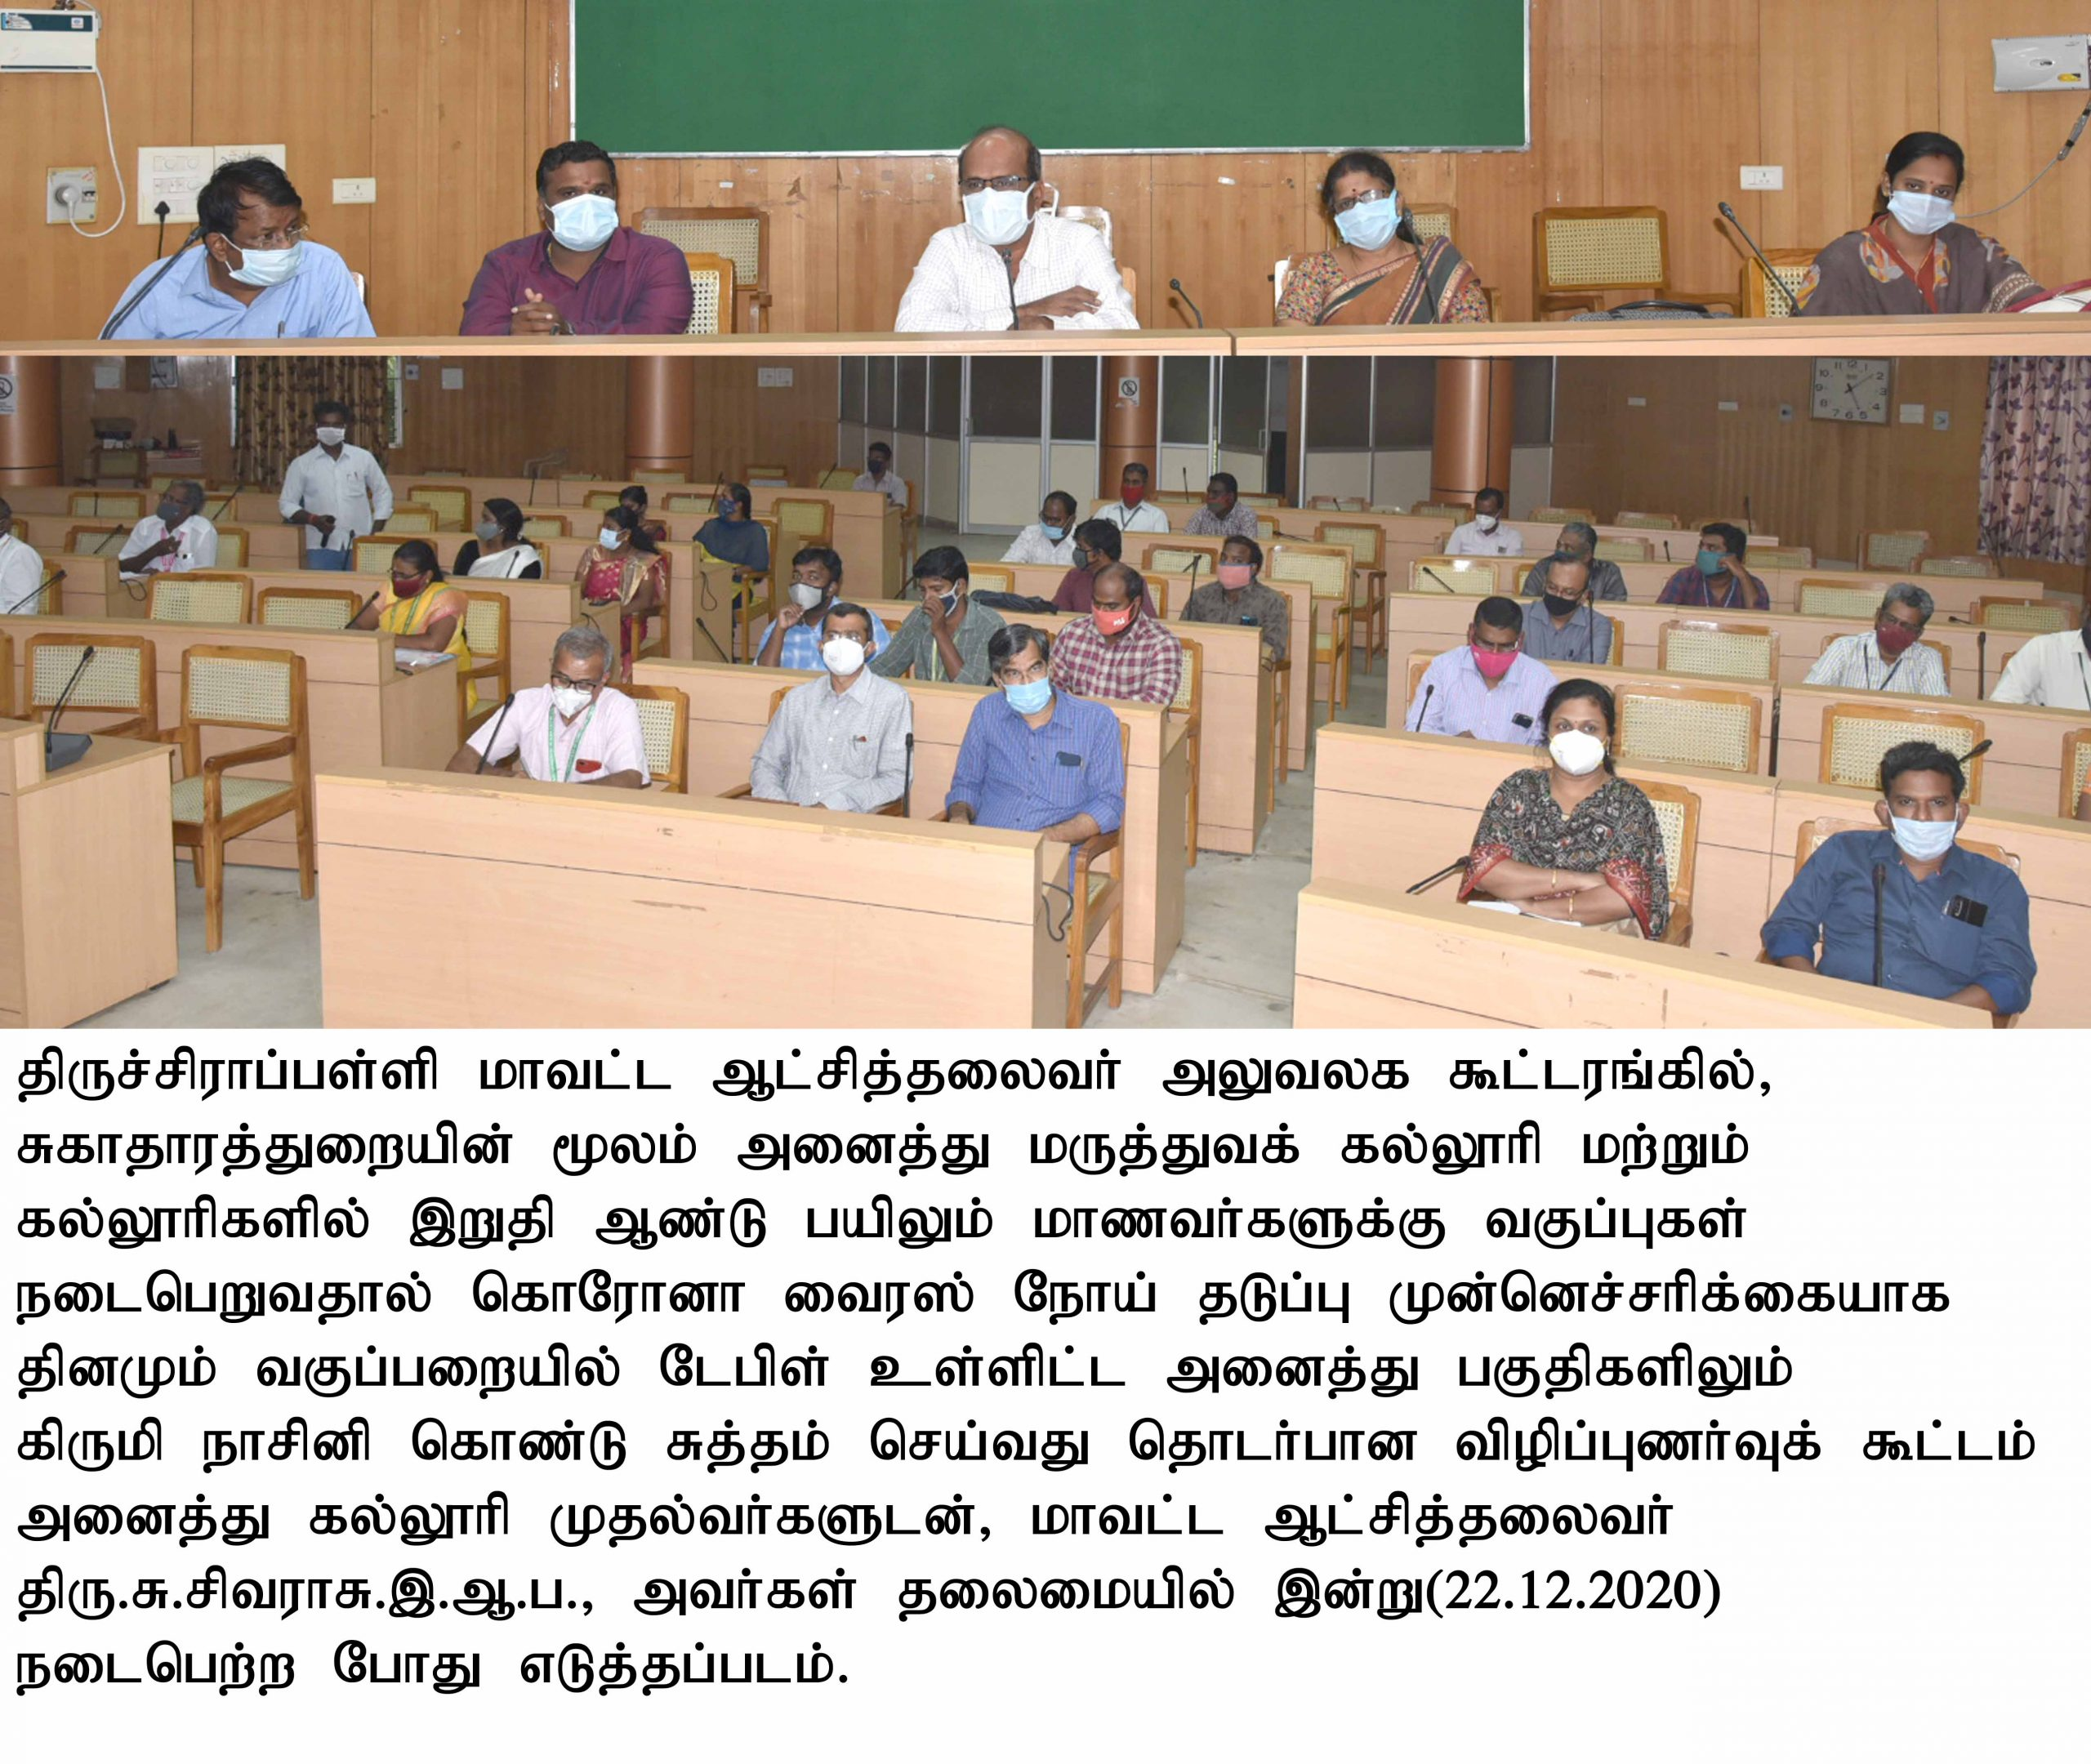 District Collector conducted coordination meeting with officials regarding preventive measures during colleges reopening